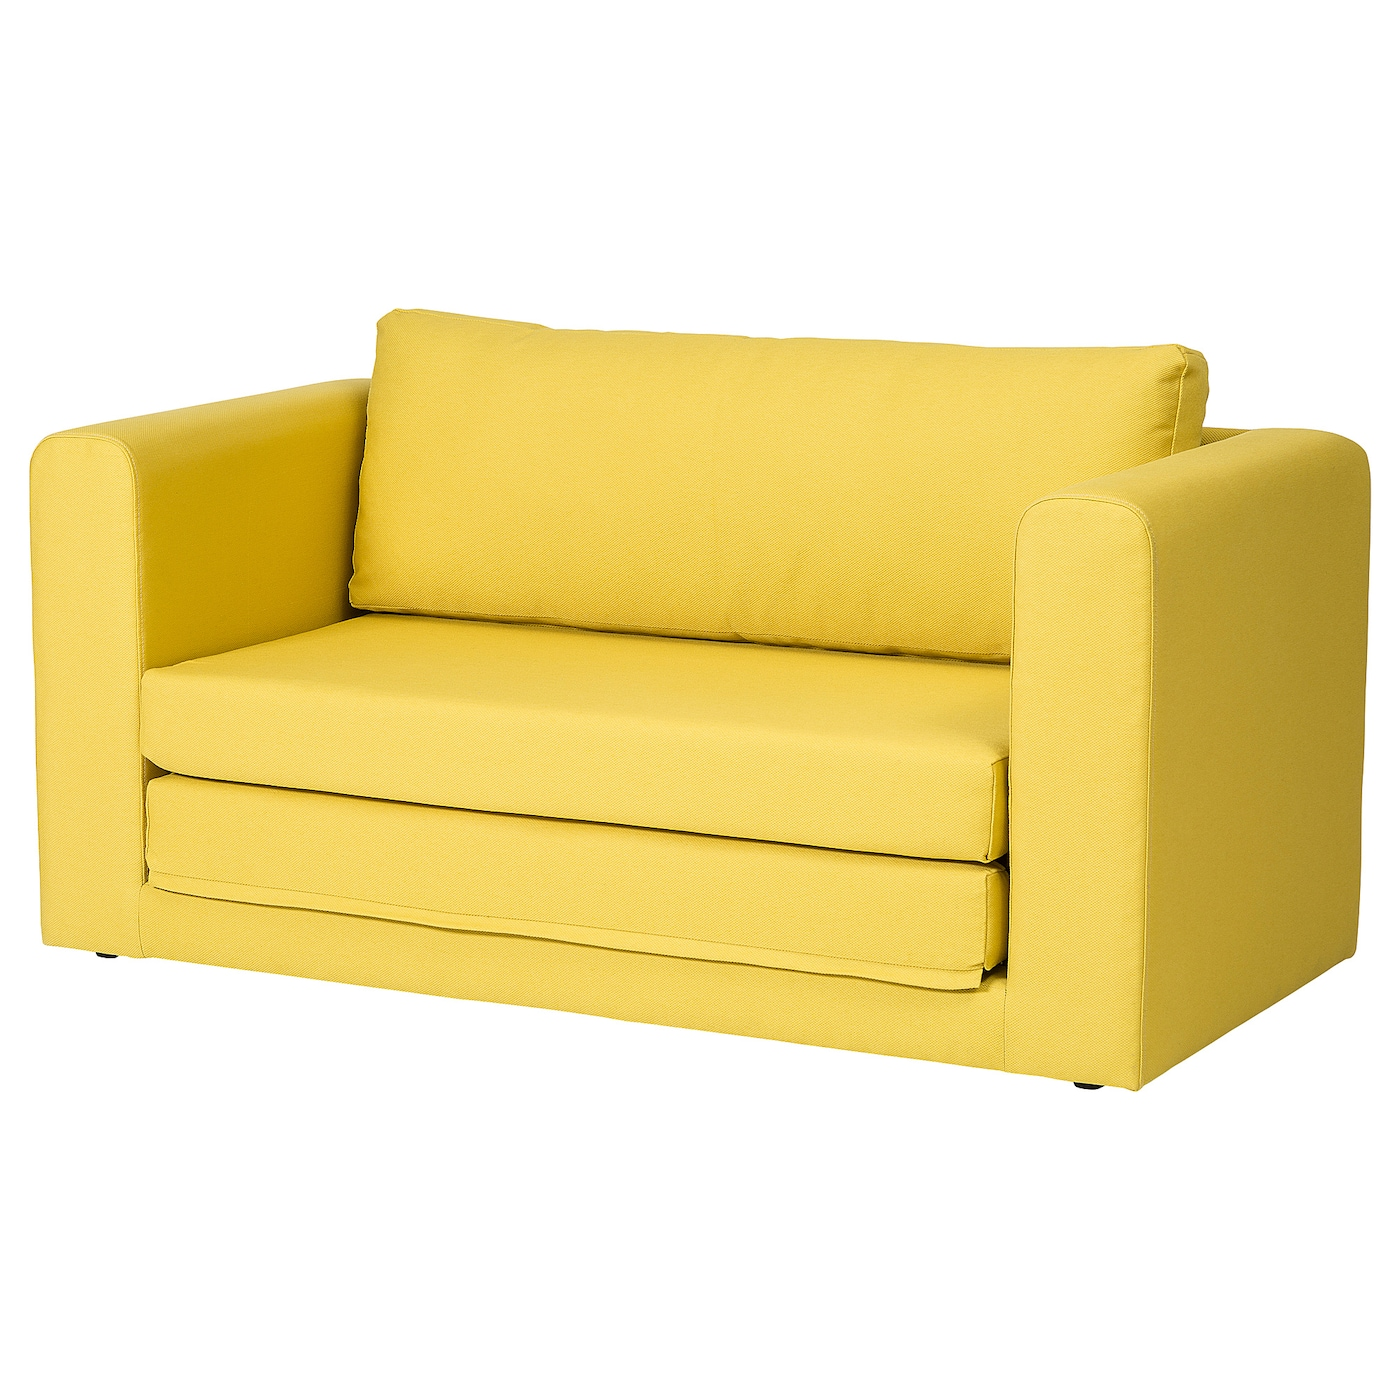 2-seat sofa-bed ASKEBY Gräsbo golden-yellow